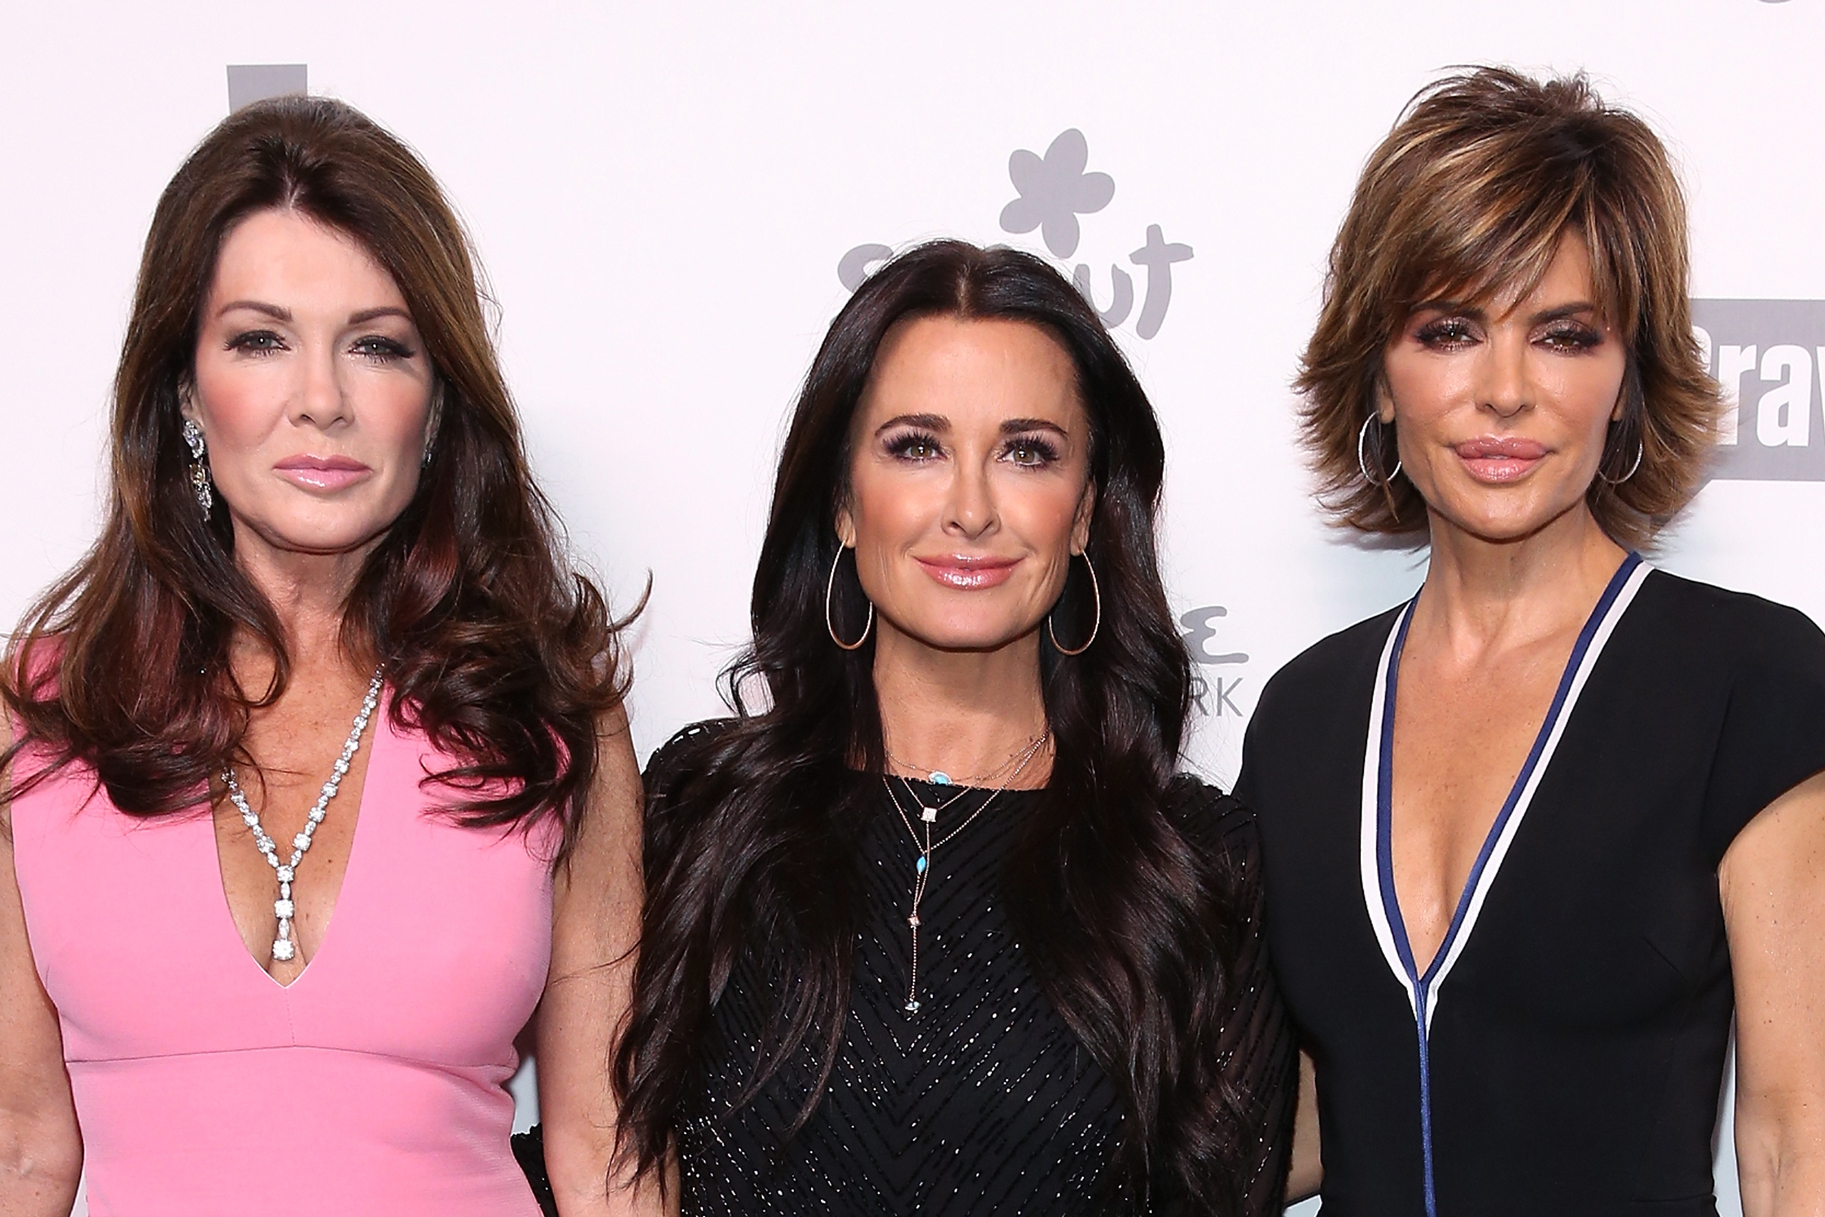 lisa-vanderpump-faces-criticism-from-the-lgbt-community-for-a-tucking-joke-about-erika-jayne-gets-called-transphobic-by-lisa-rinna